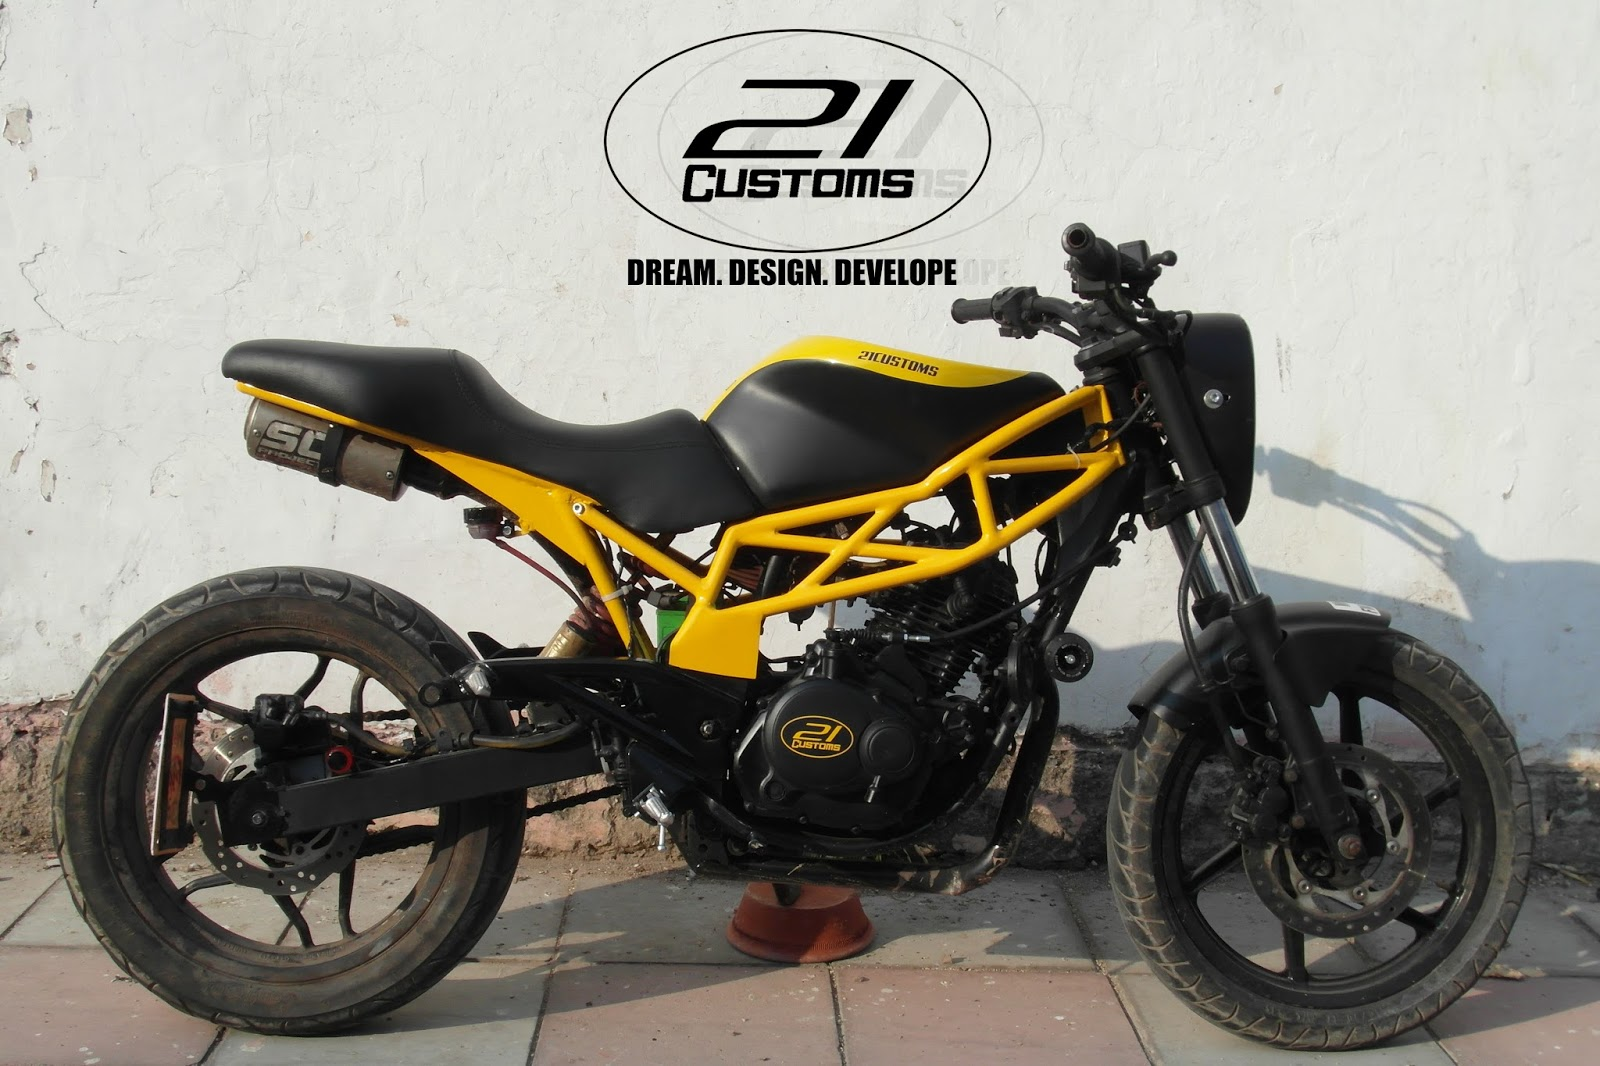 2007 Pulsar modified into Mean Street Fighter by 21 Customs